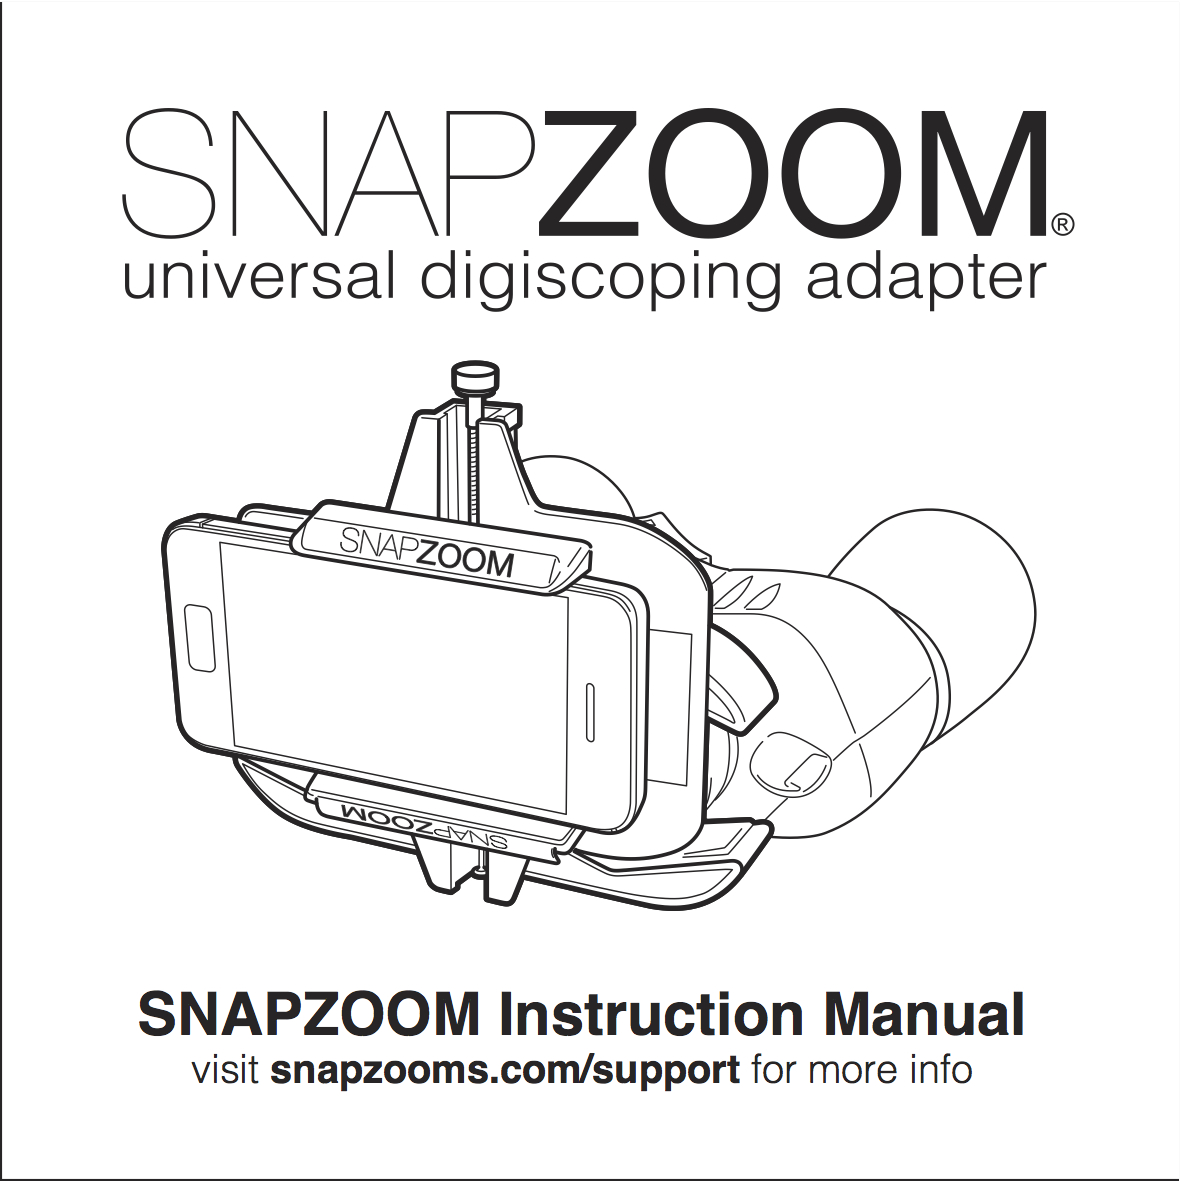 Instructions and set up videos — Snapzoom universal